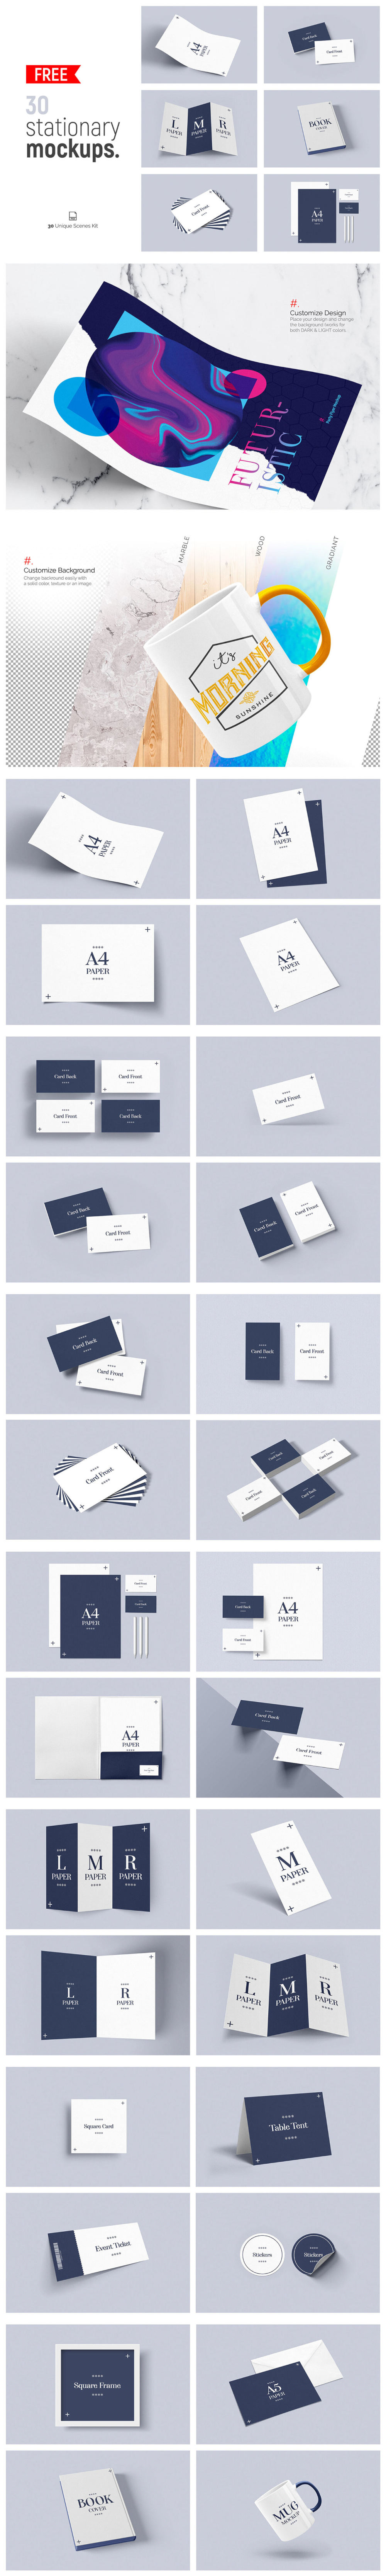 30 Free Stationery Mockups Full Preview